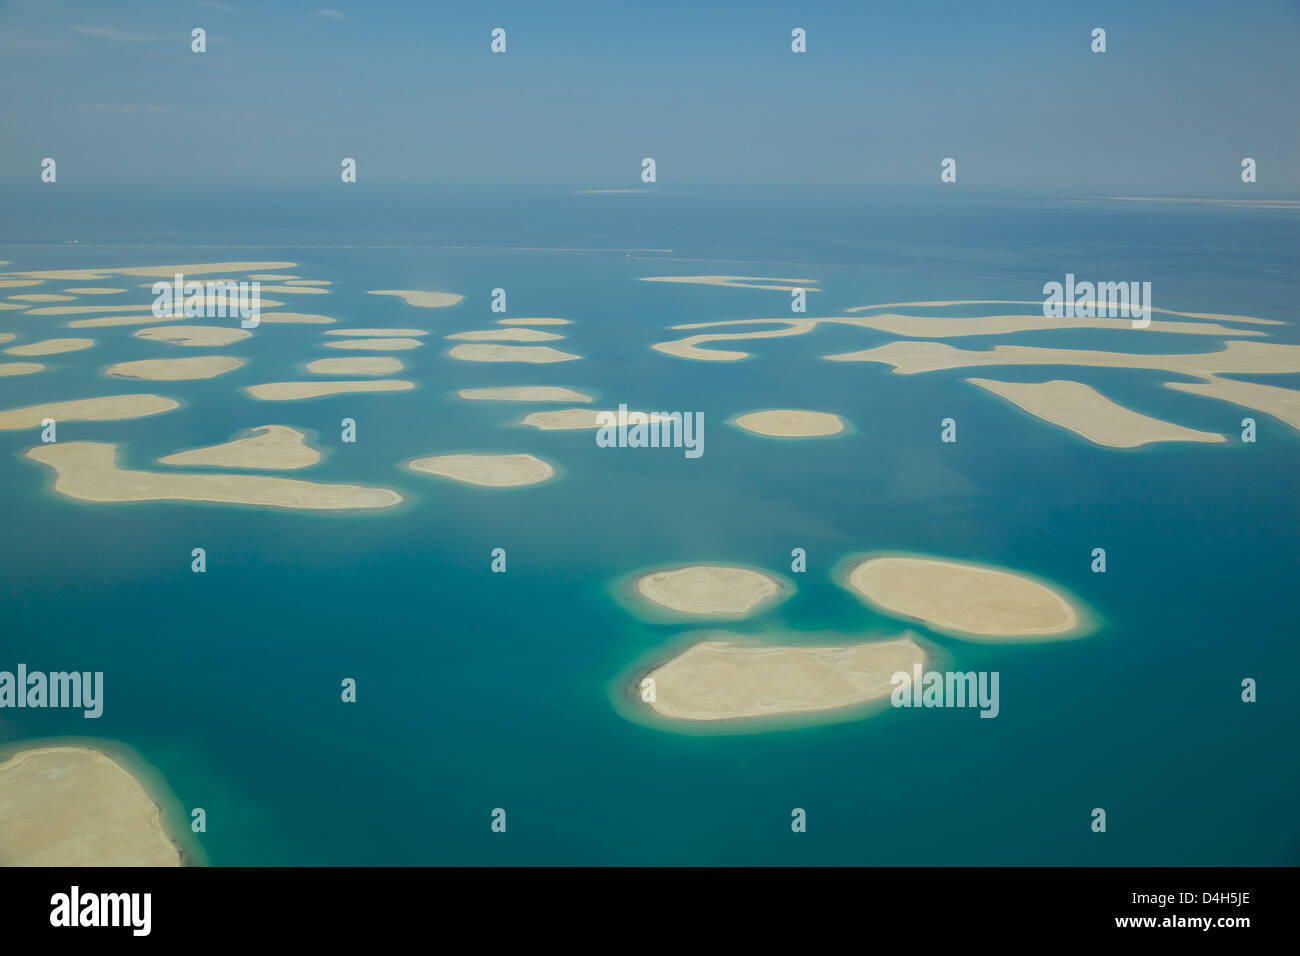 View of The World from seaplane, Dubai, United Arab Emirates, Middle East - Stock Image